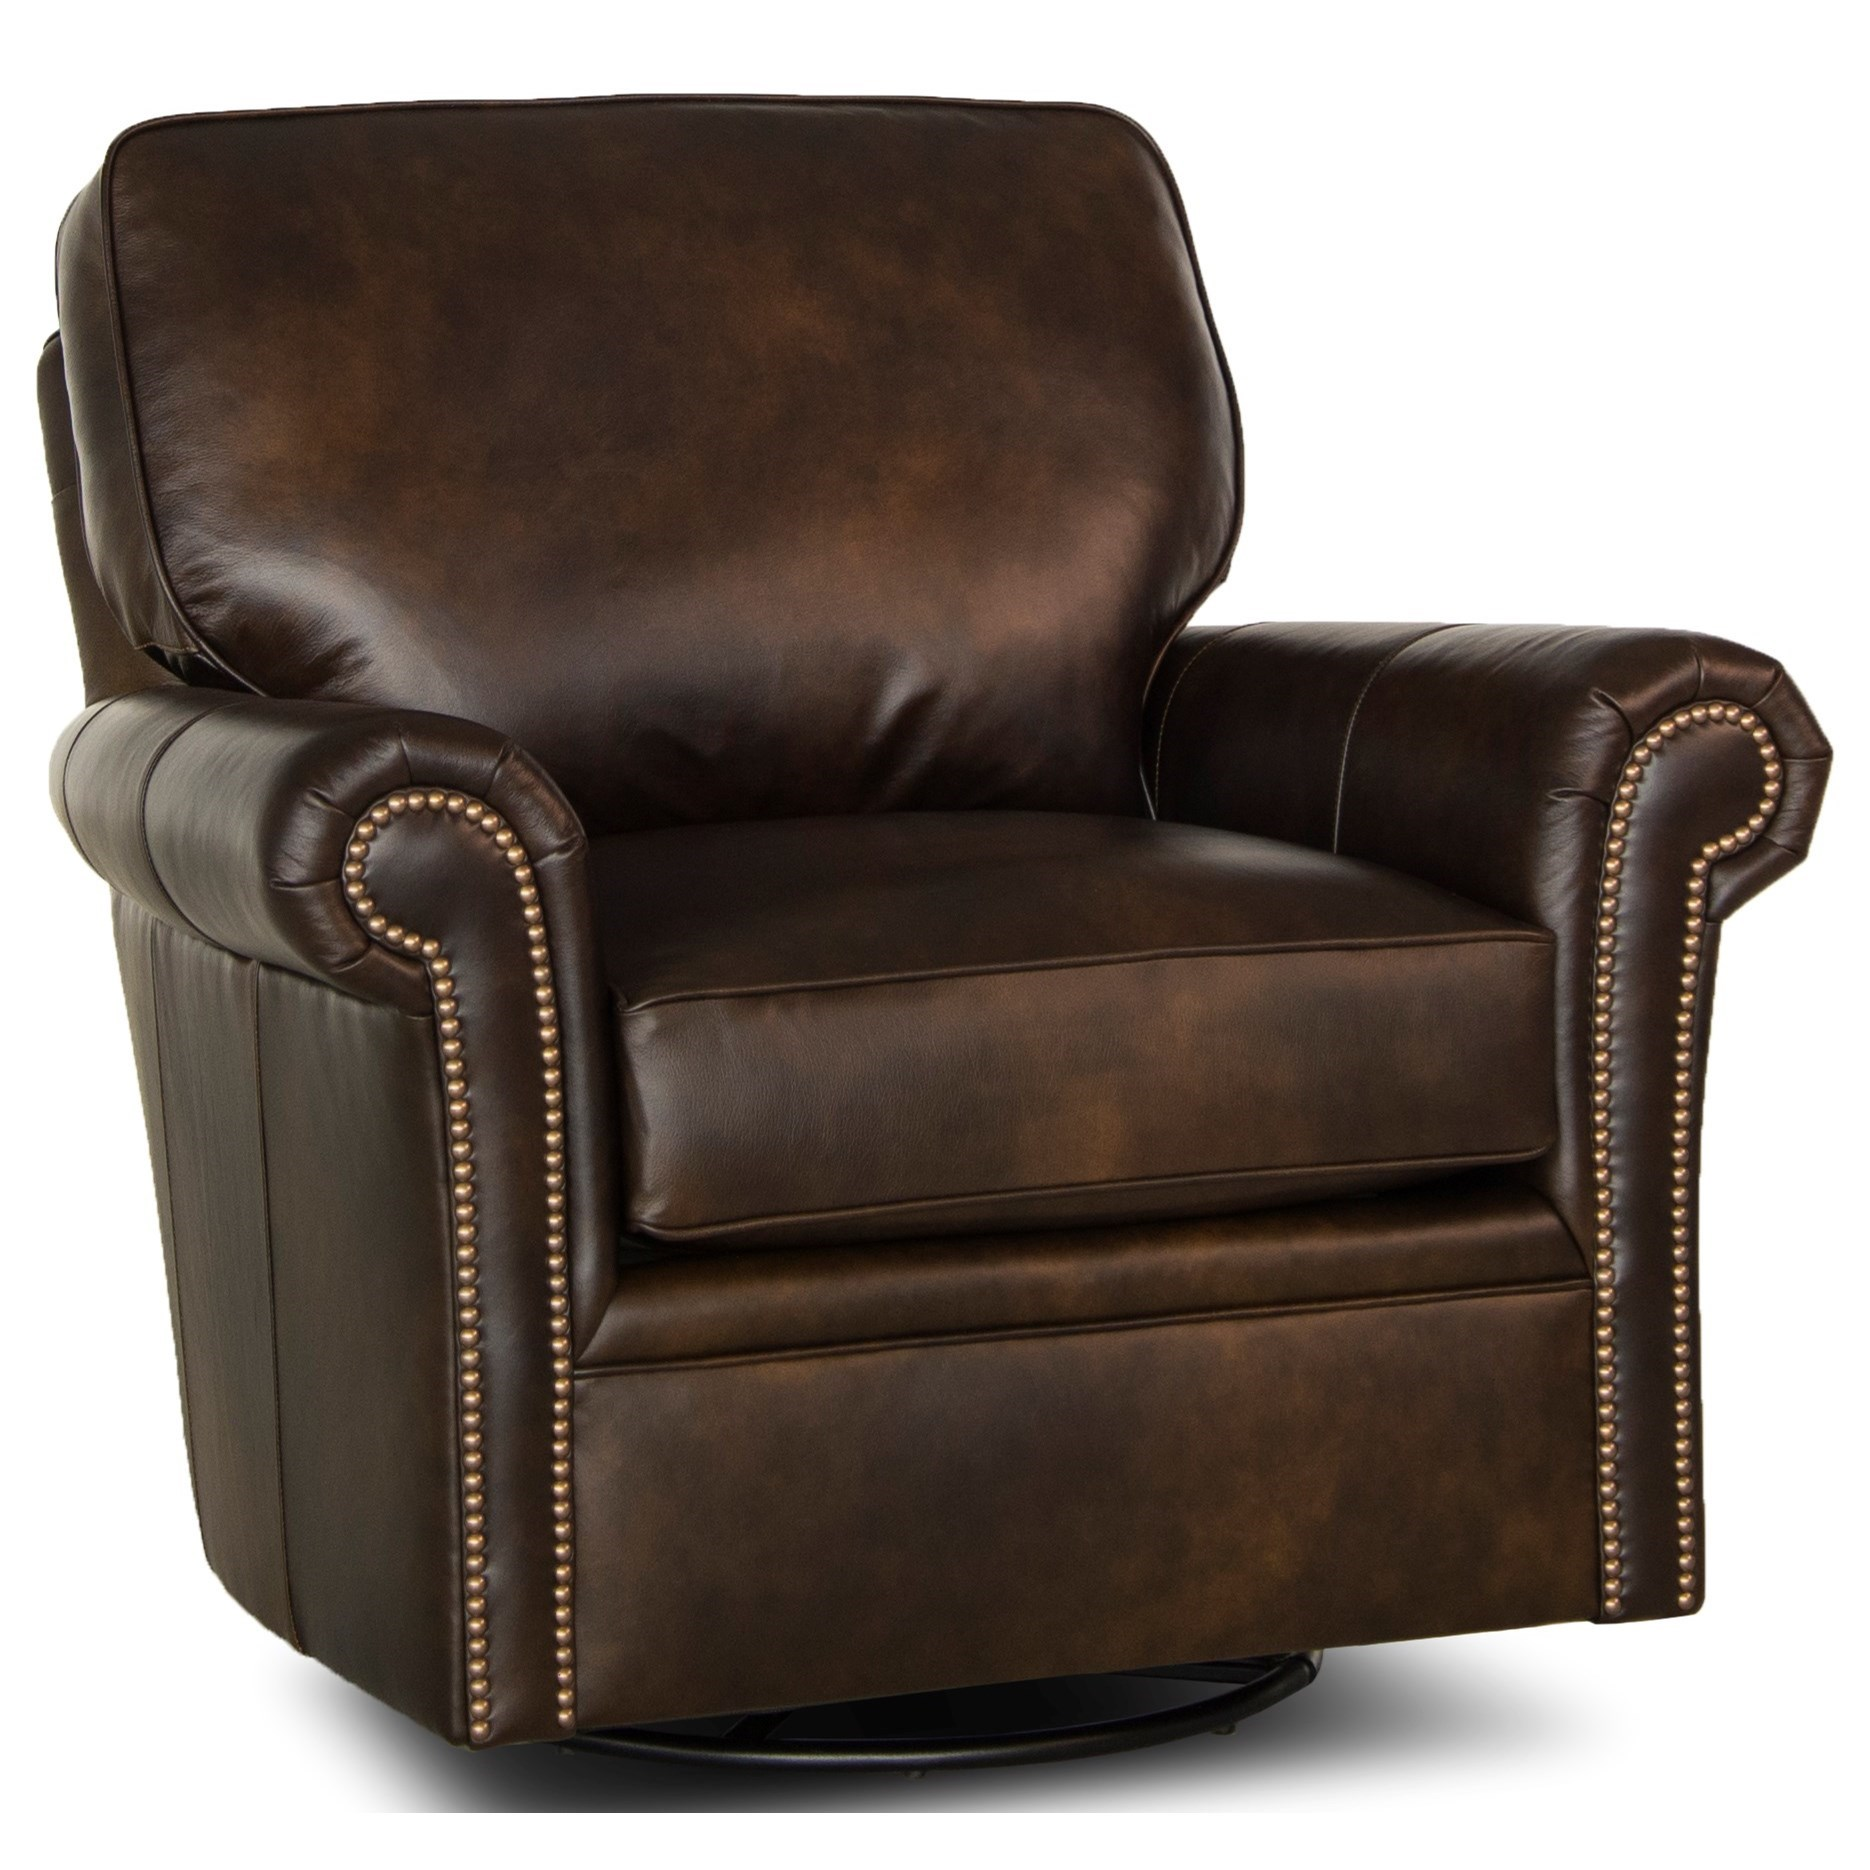 Upholstered Glider Chair Smith Brothers 528 Traditional Swivel Glider Chair With